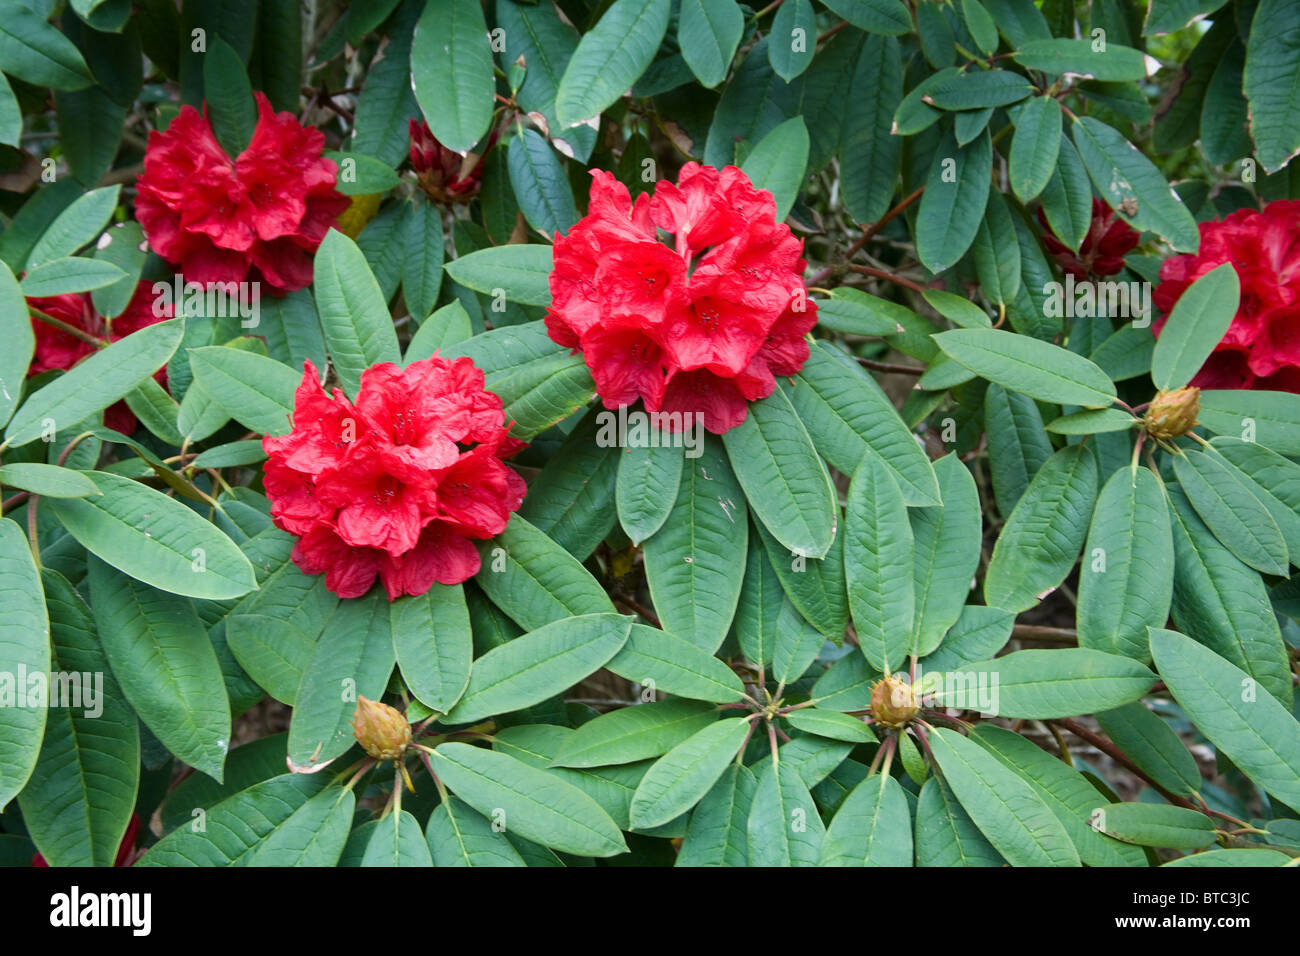 Rhododendron Trelissick Garden United Kingdom - Stock Image